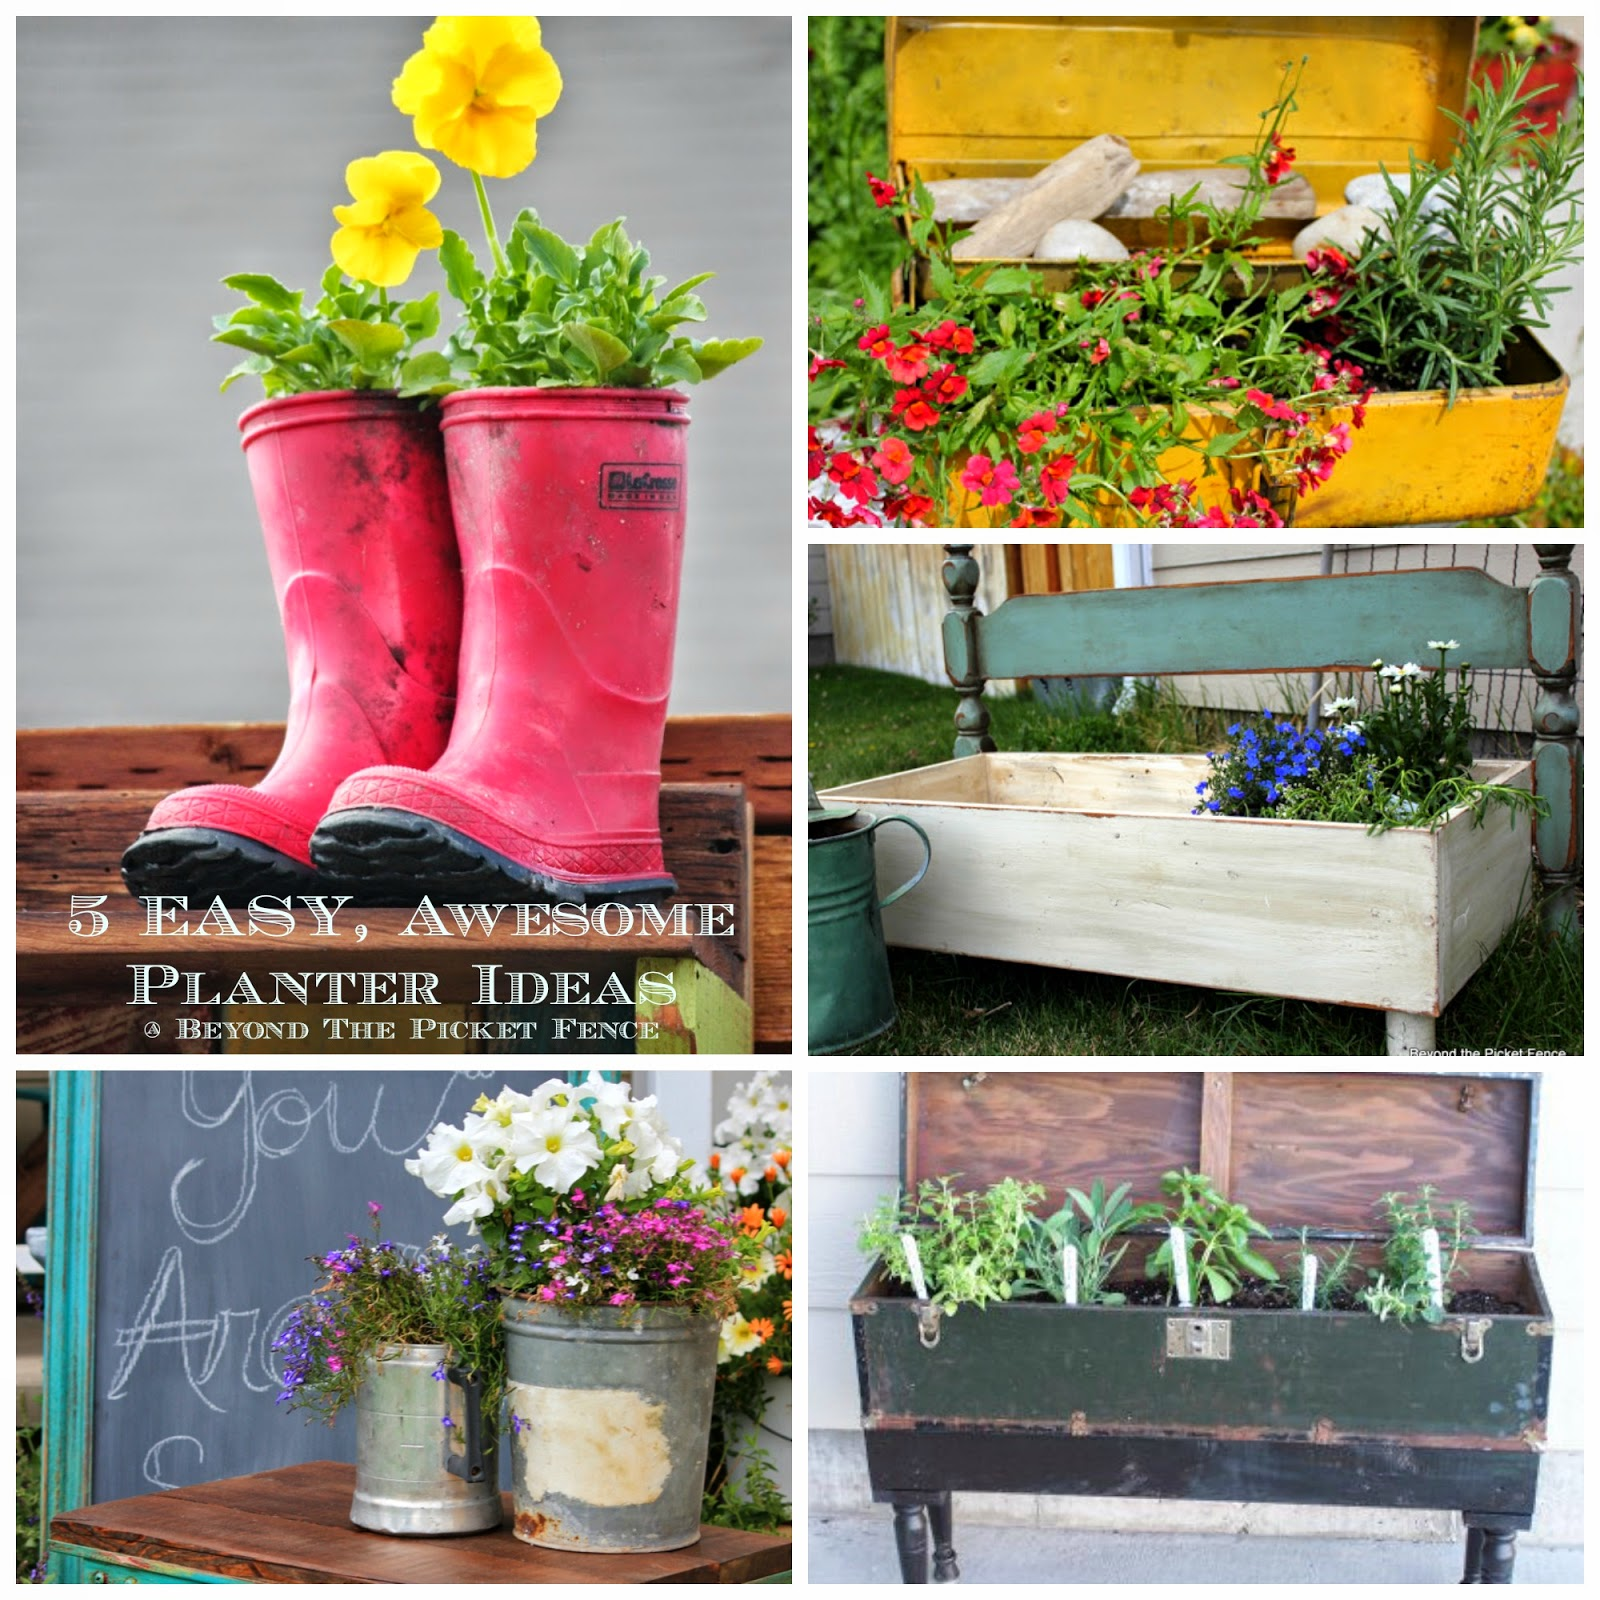 repurposed planter ideas easy http://bec4-beyondthepicketfence.blogspot.com/2014/05/5-easy-awesome-low-cost-planter-ideas.html